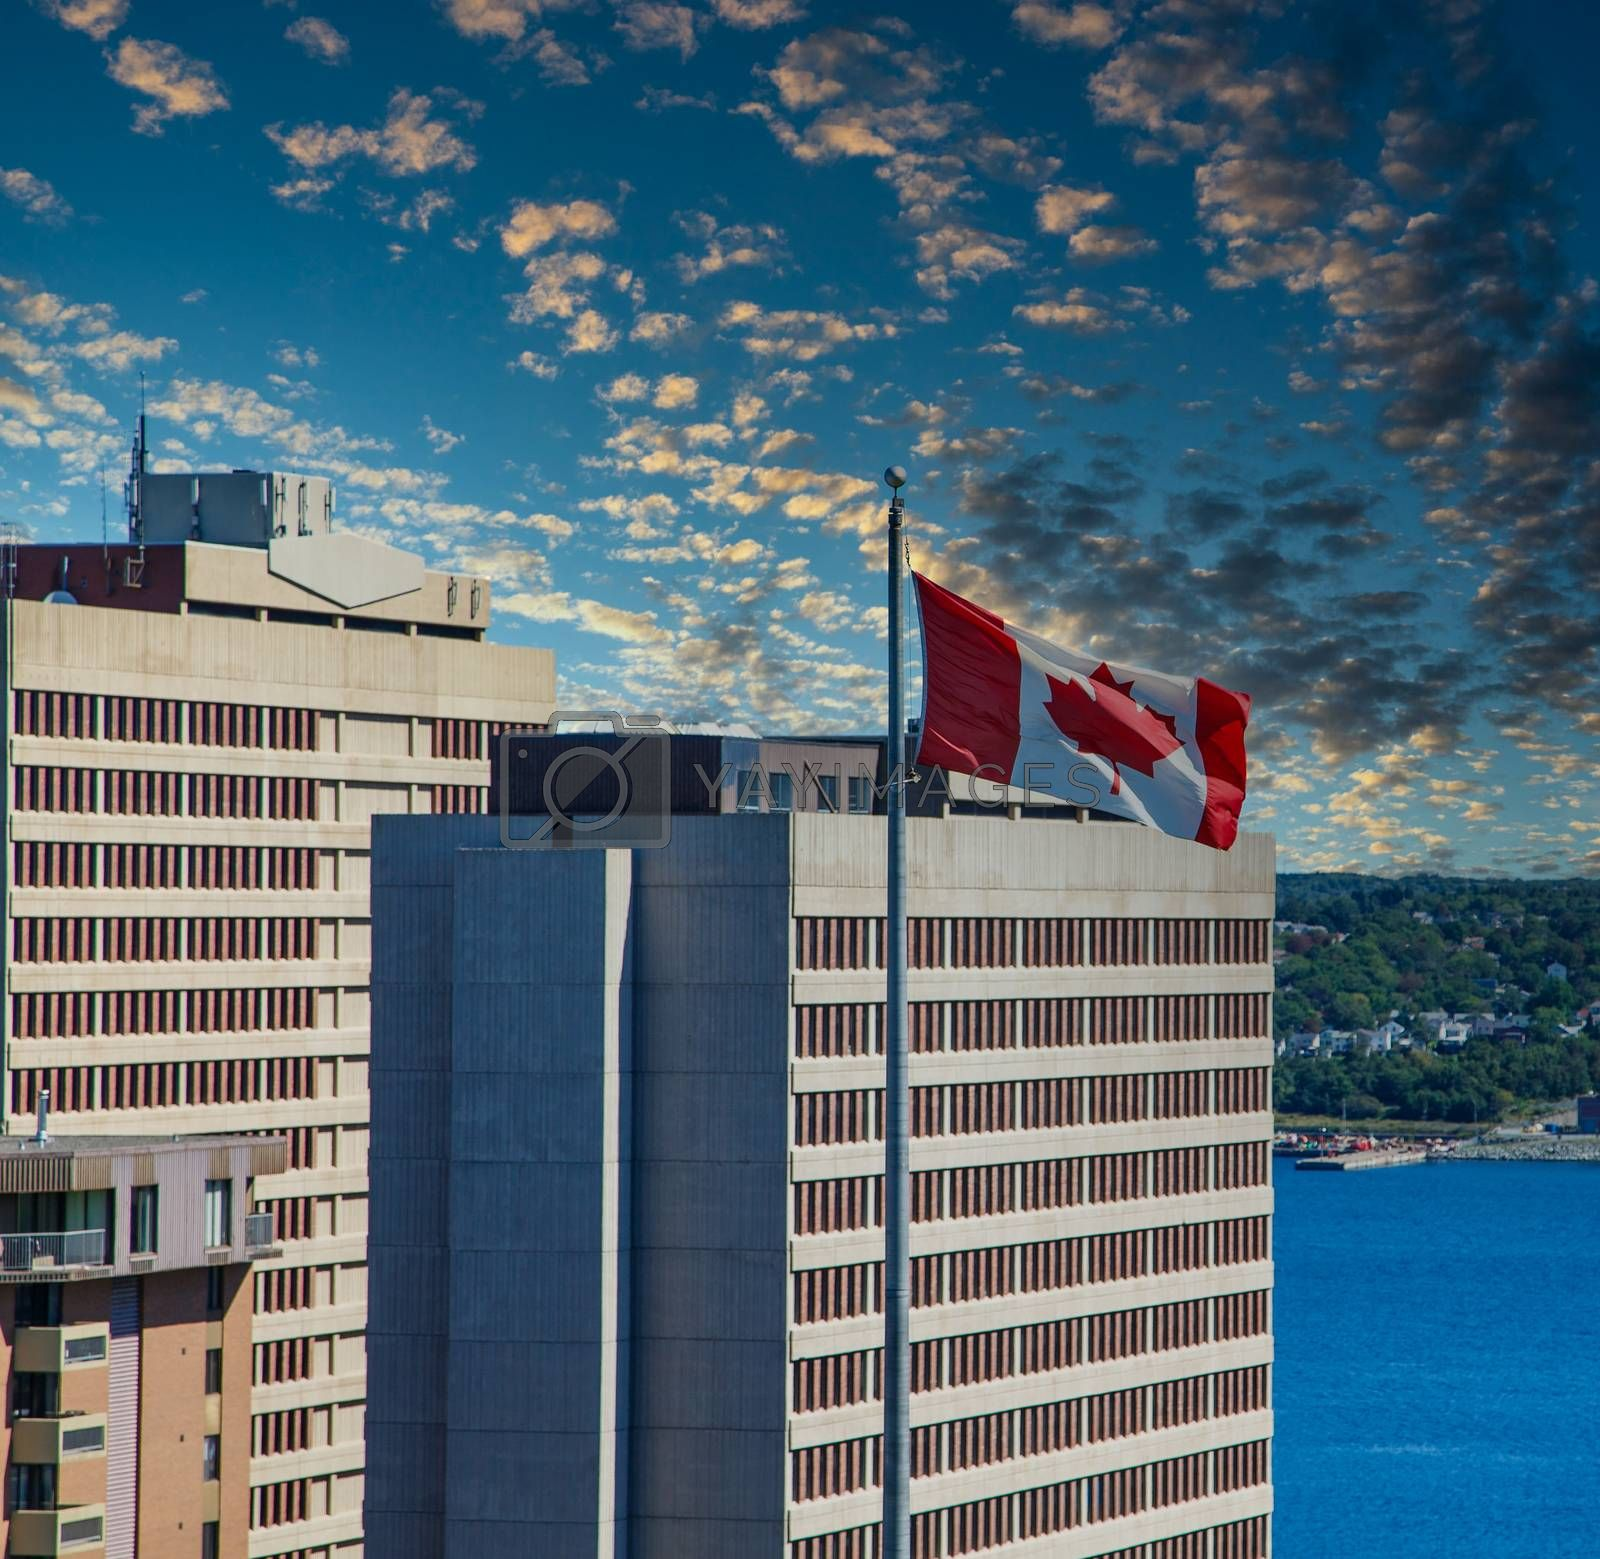 Canadian Flag by Office Buildings by dbvirago